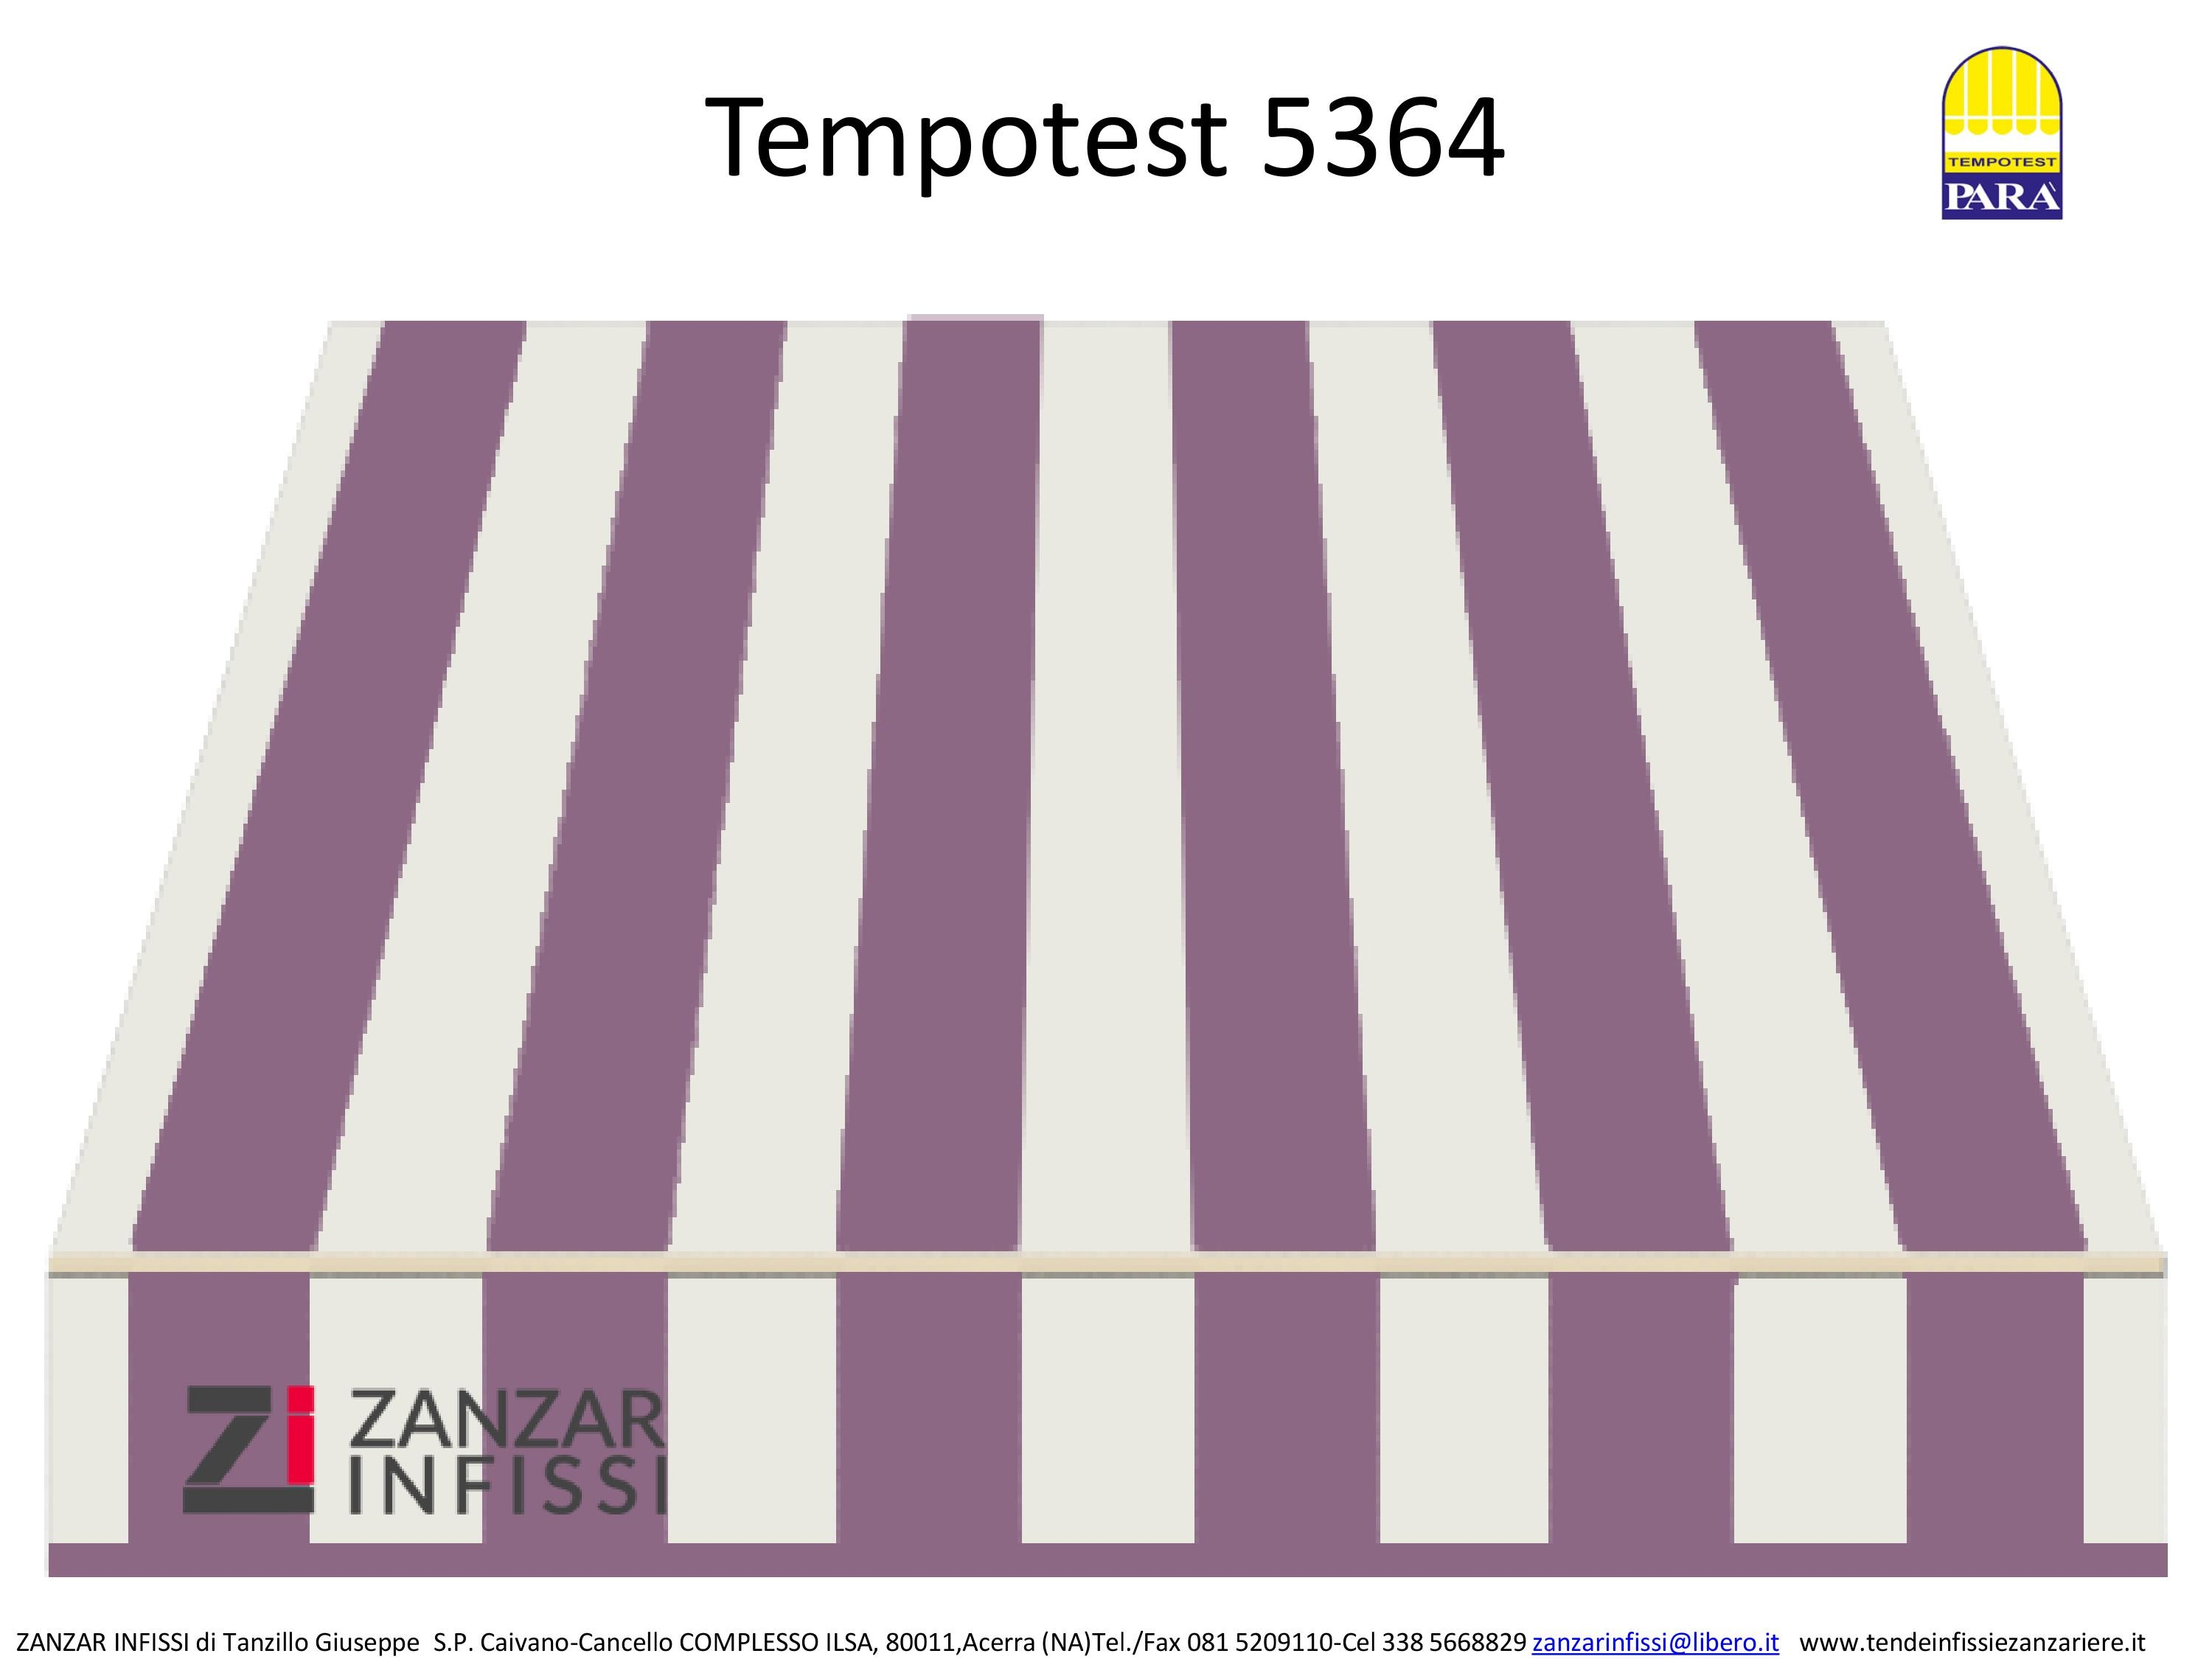 Tempotest 5364